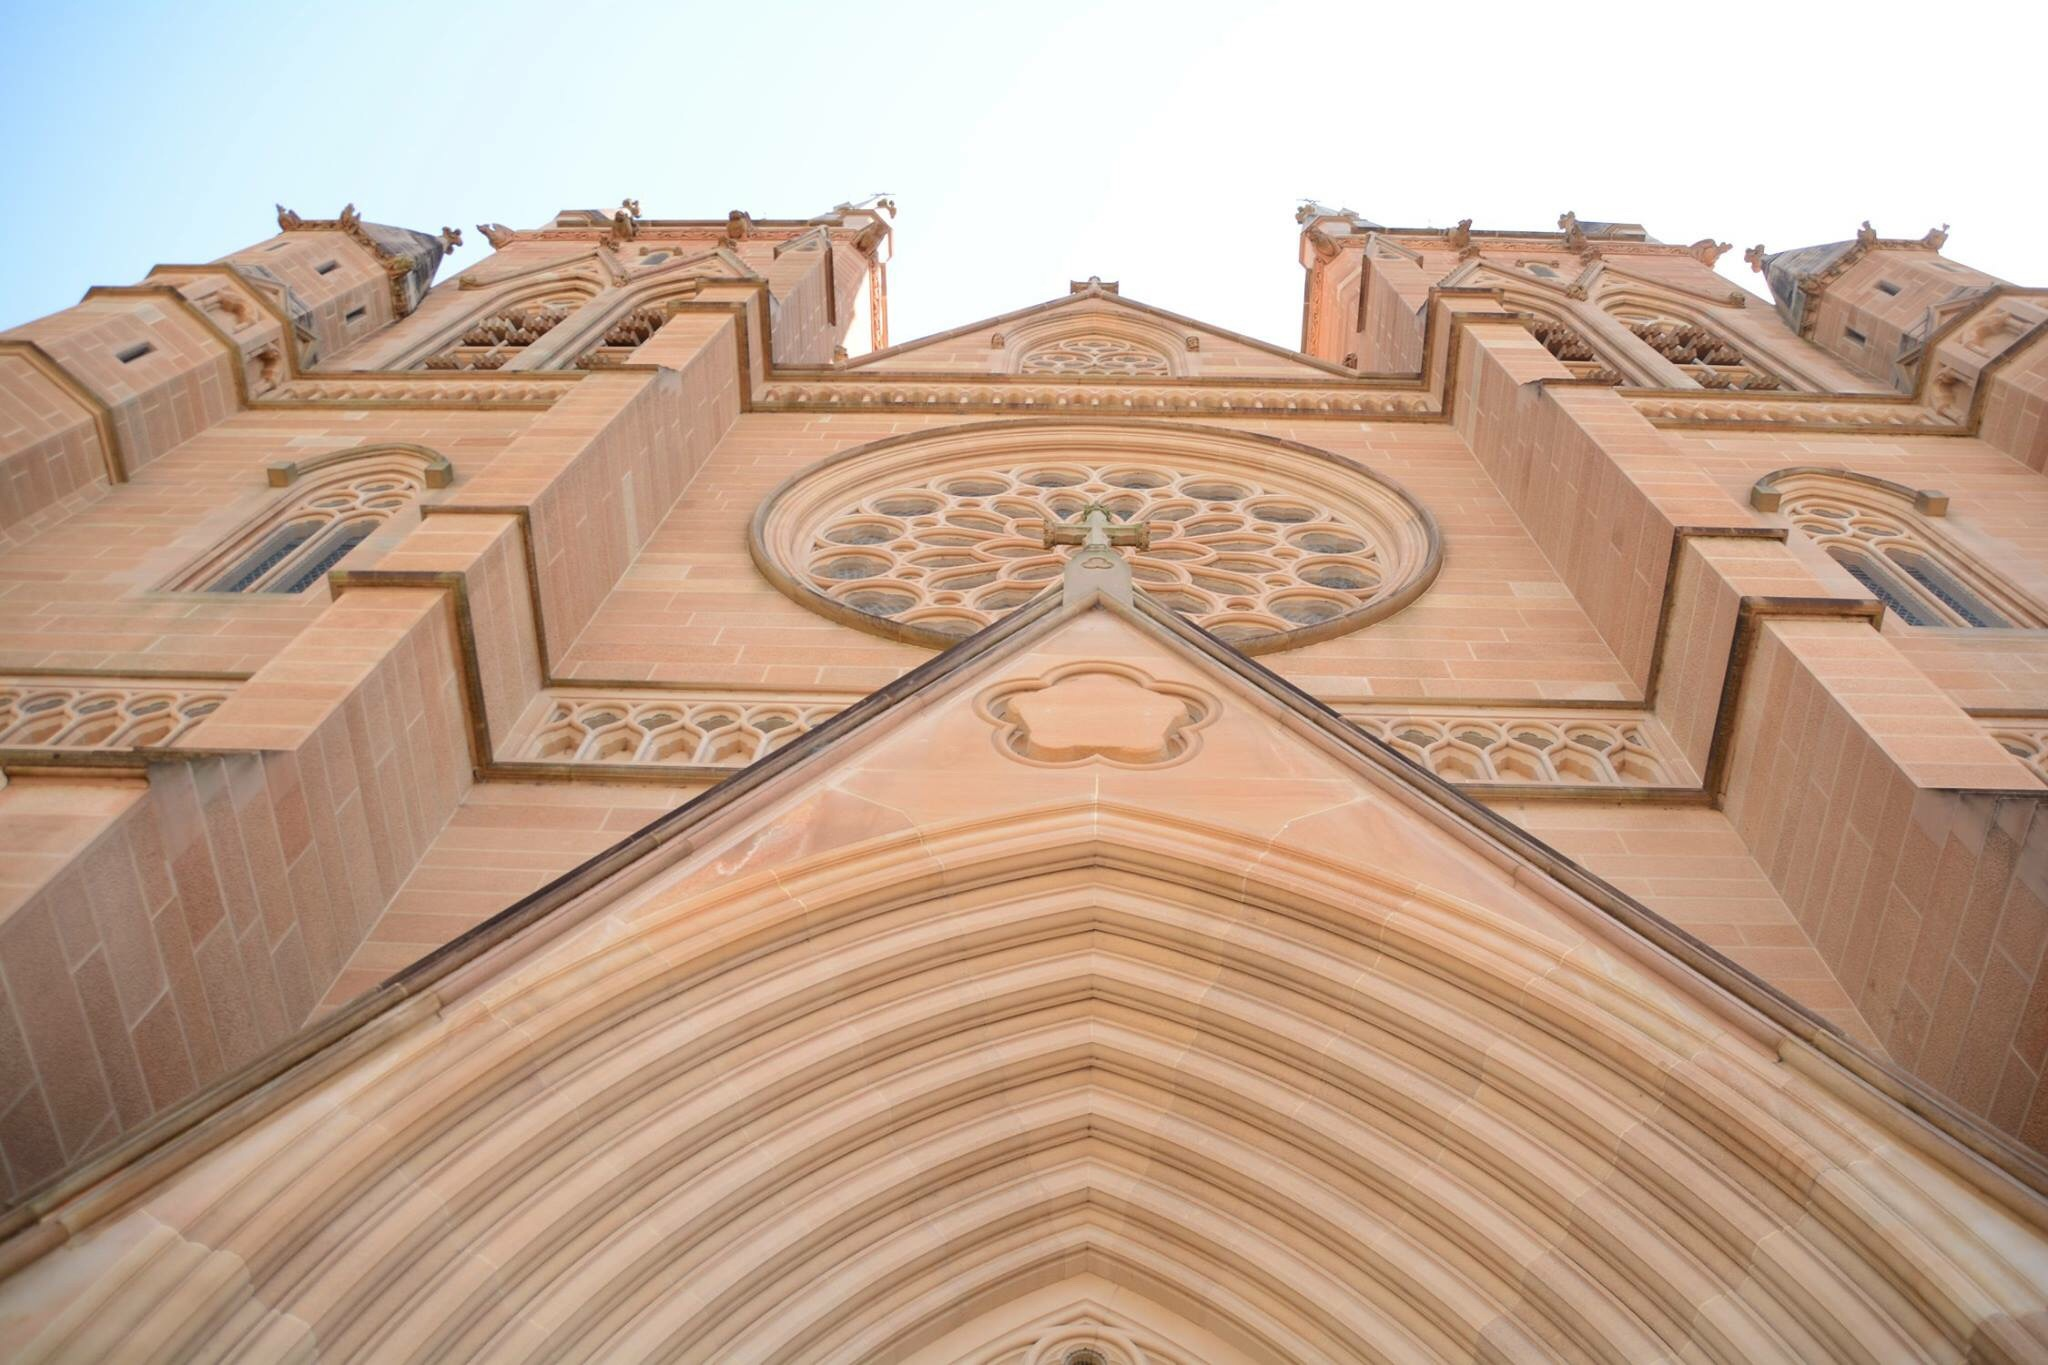 Looking to the heavens at St Mary's Cathedral by Veronica Brown